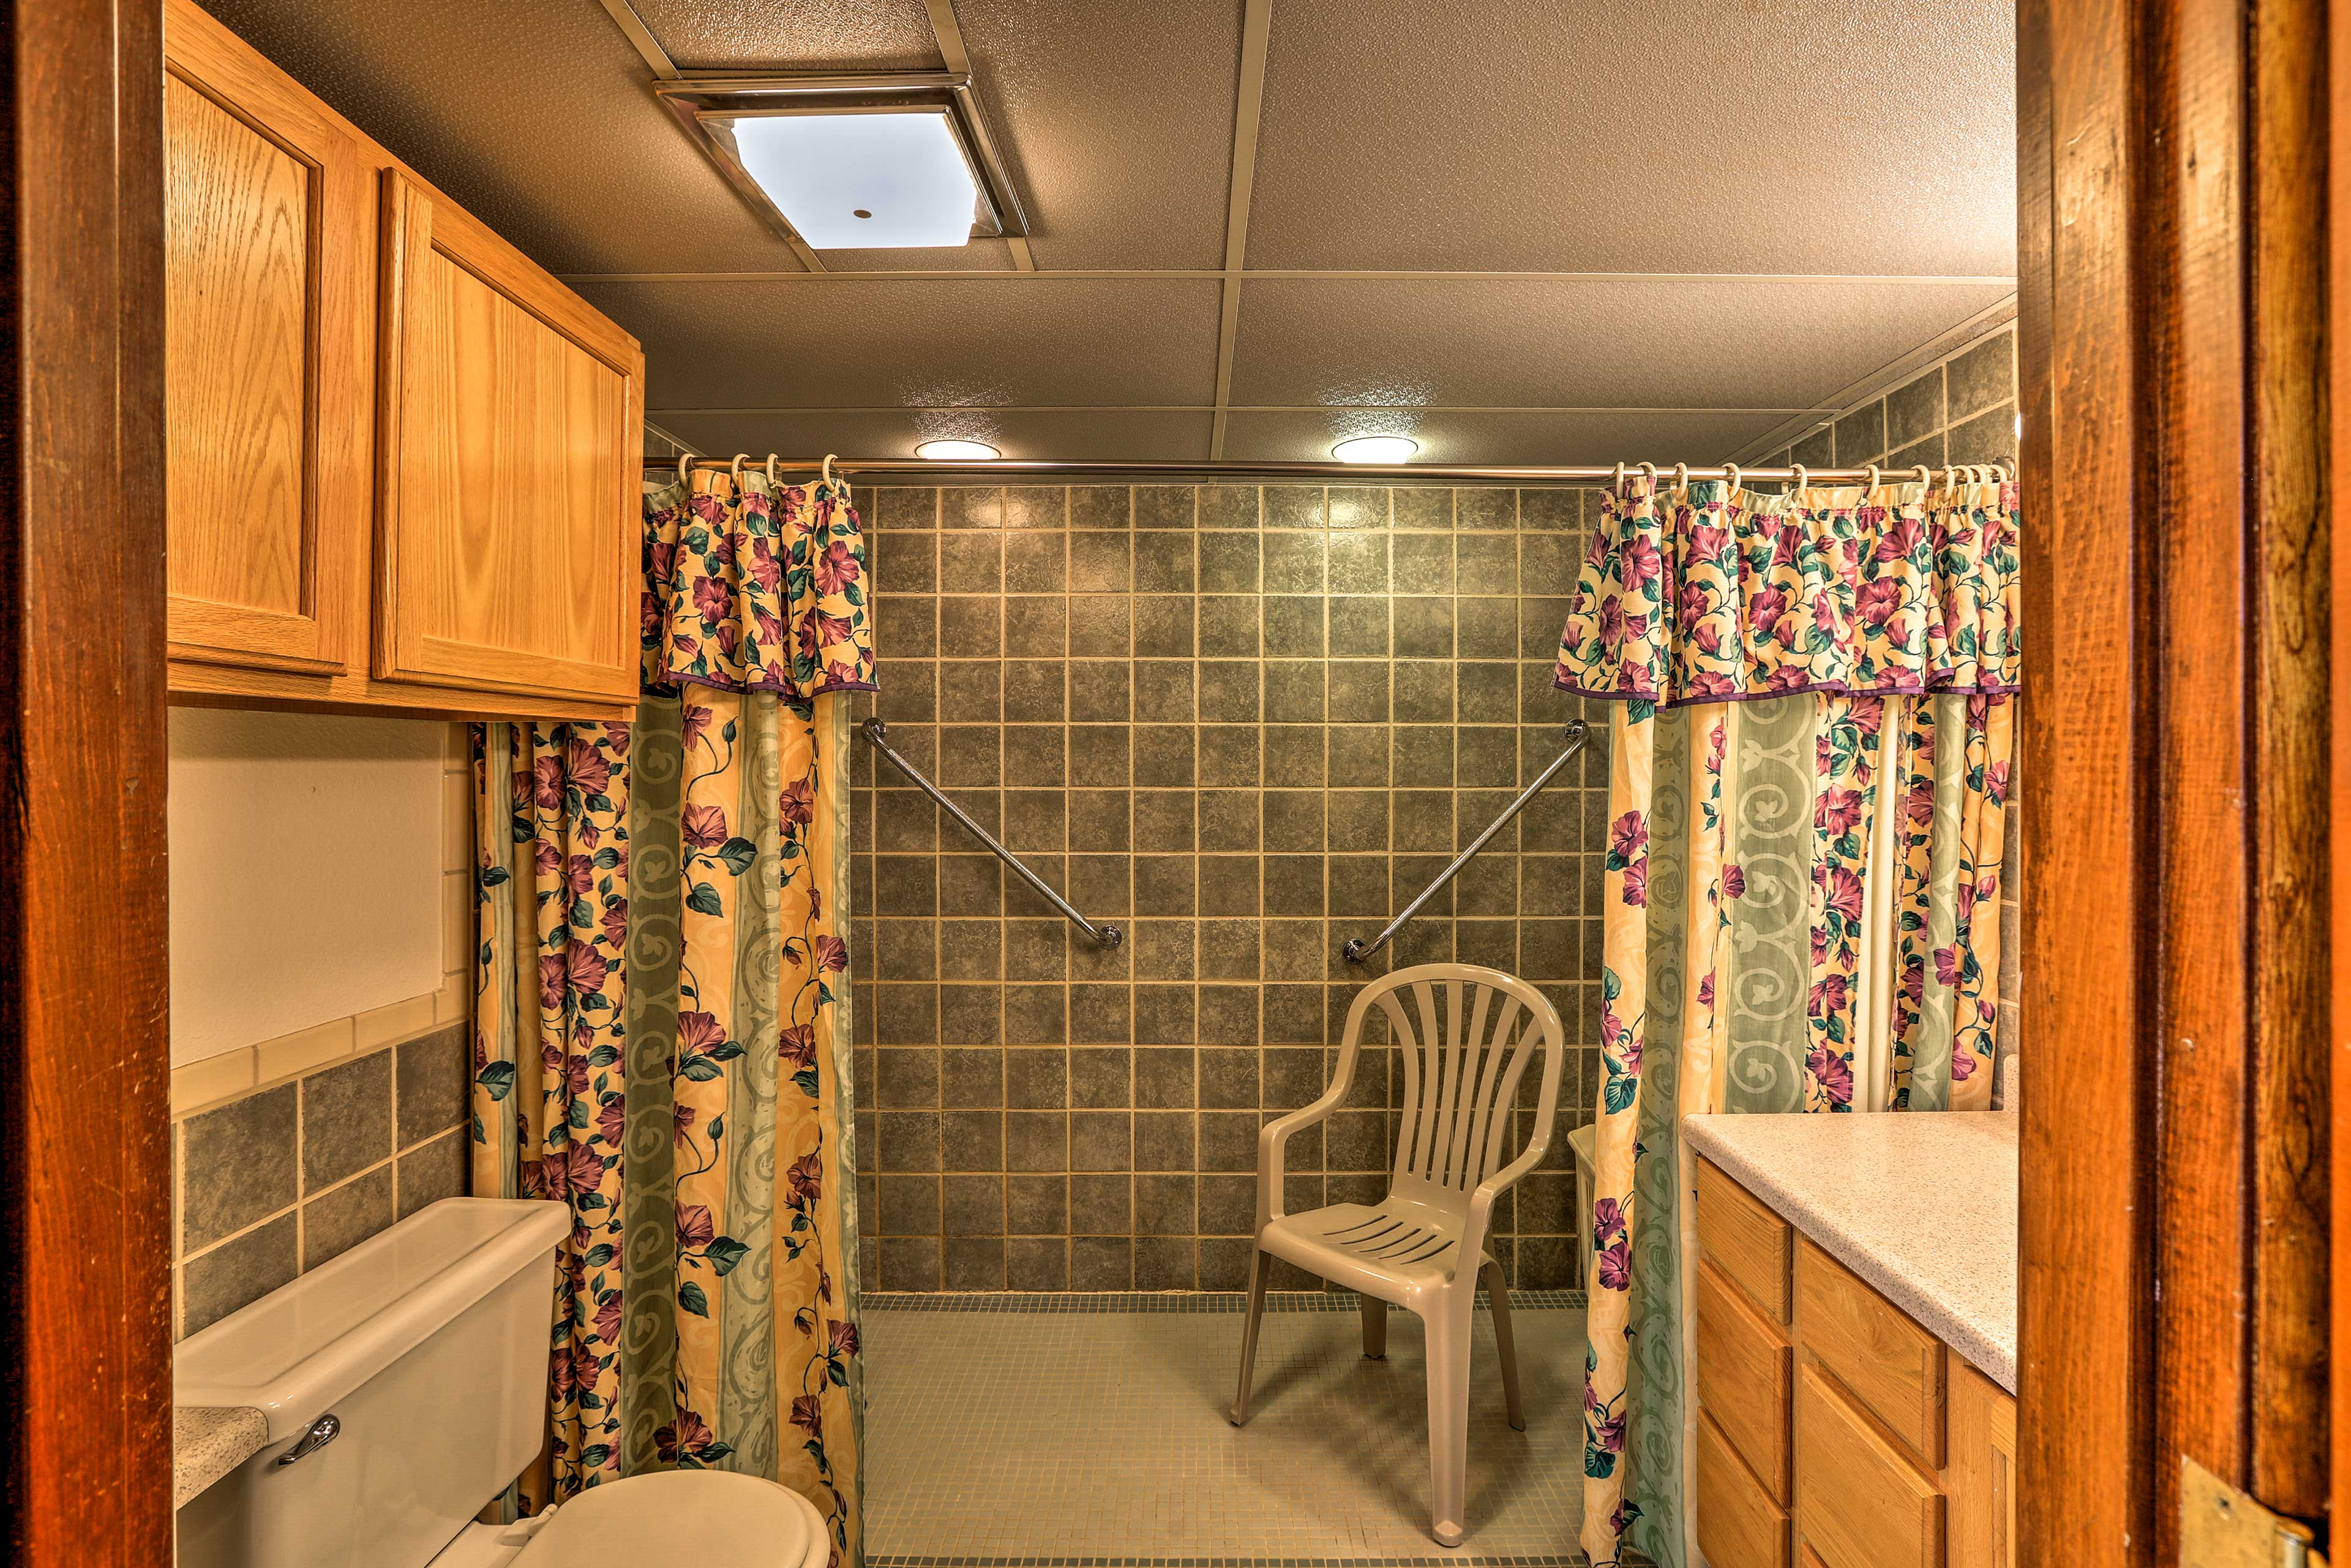 The full bathroom is handicap accessible equipped with a large shower.